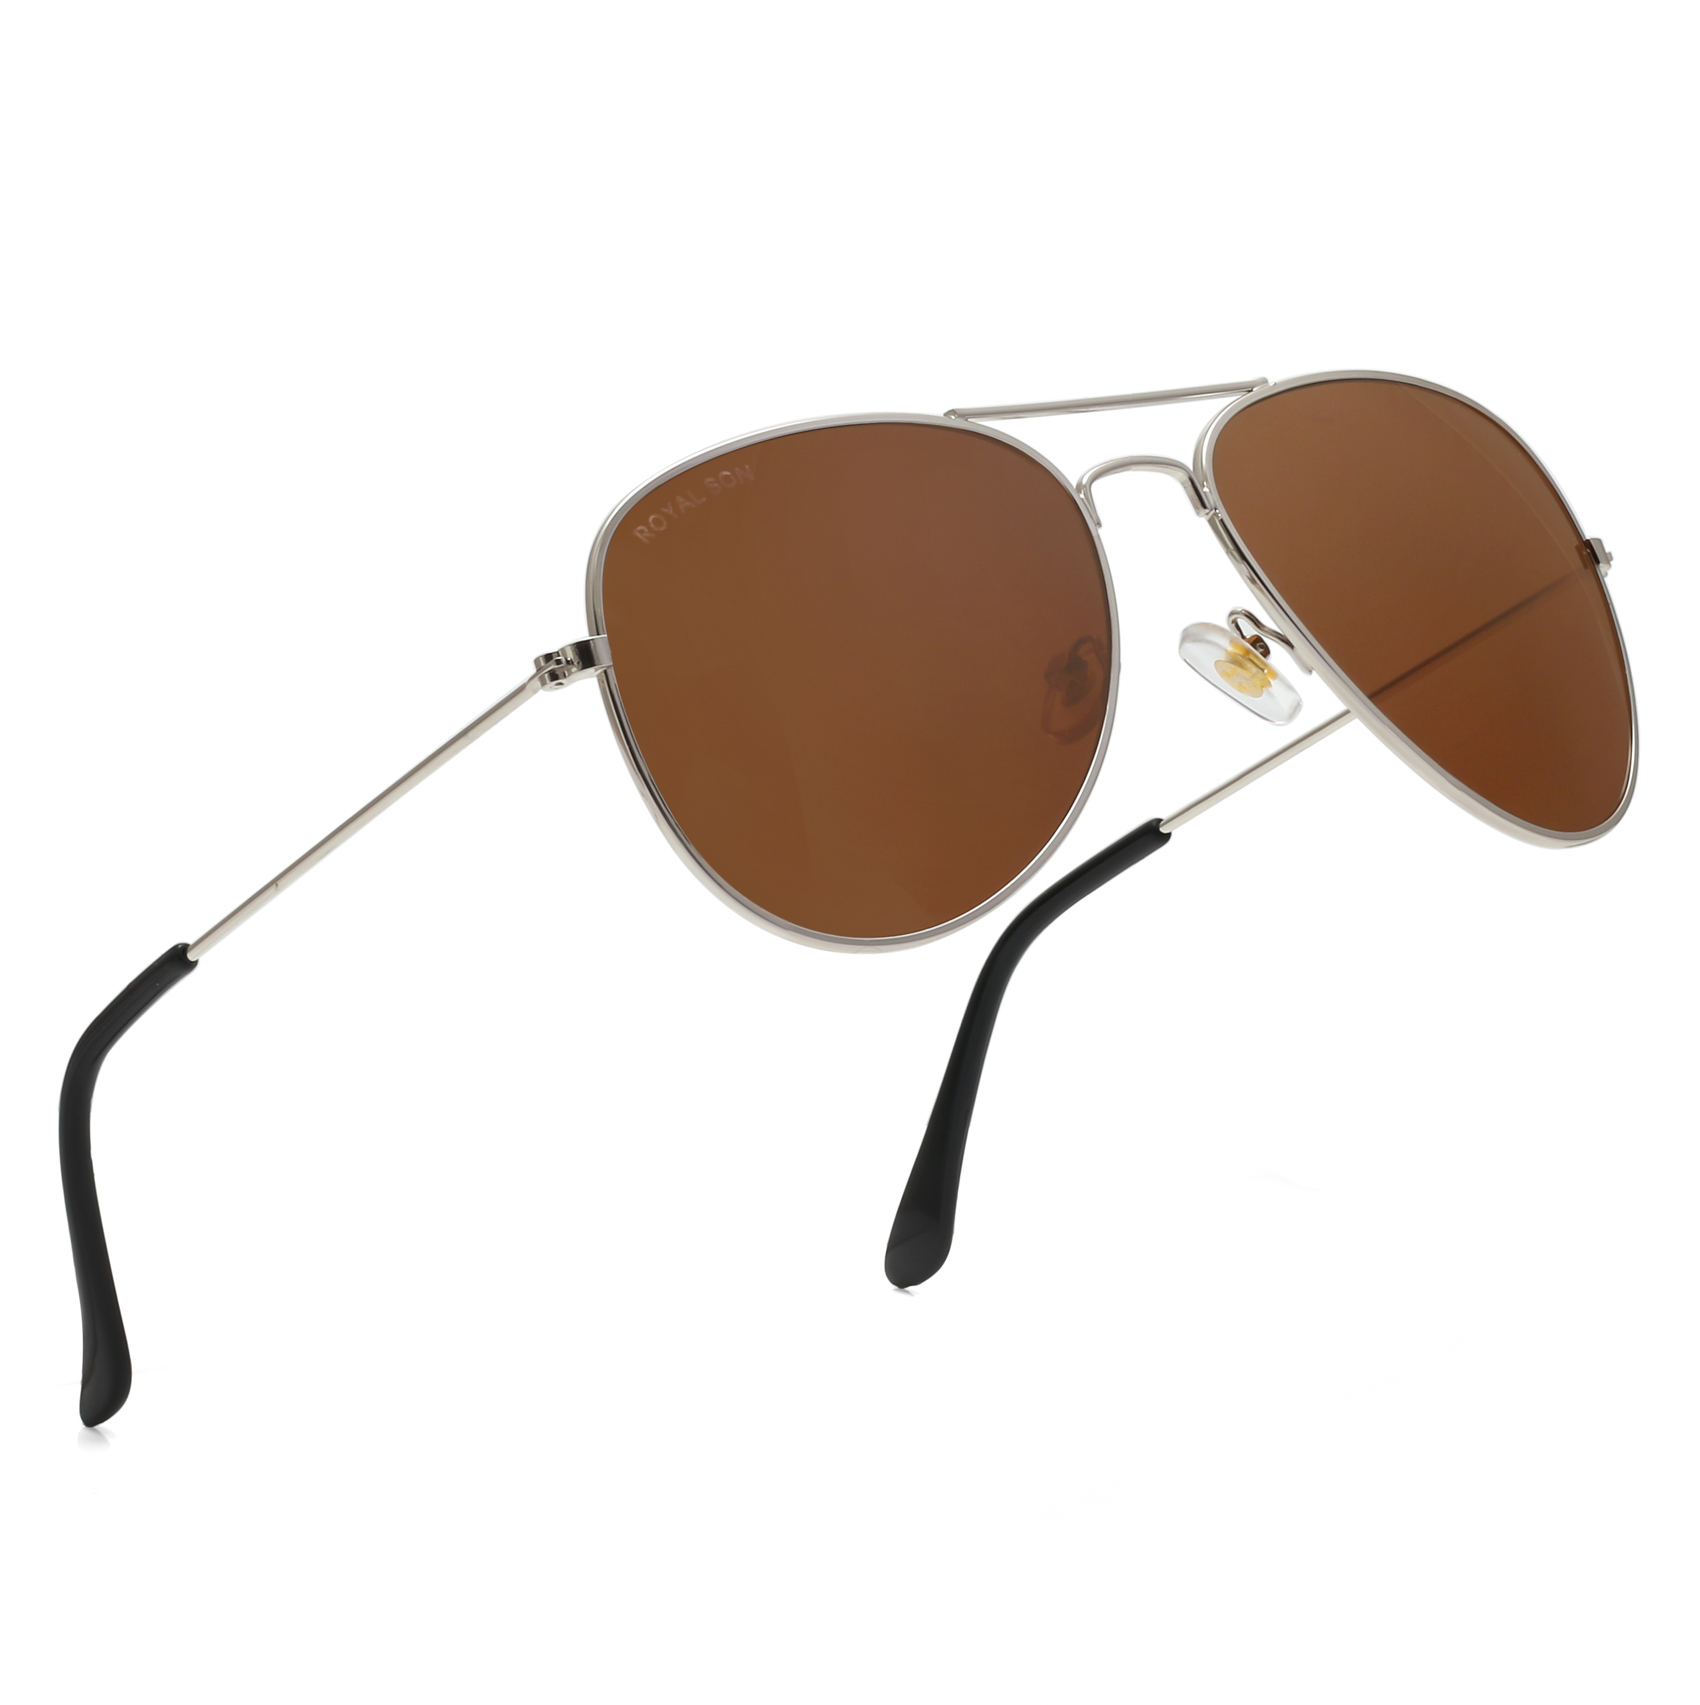 Royal Son UV Protected Aviator Unisex Sunglasses - Brown